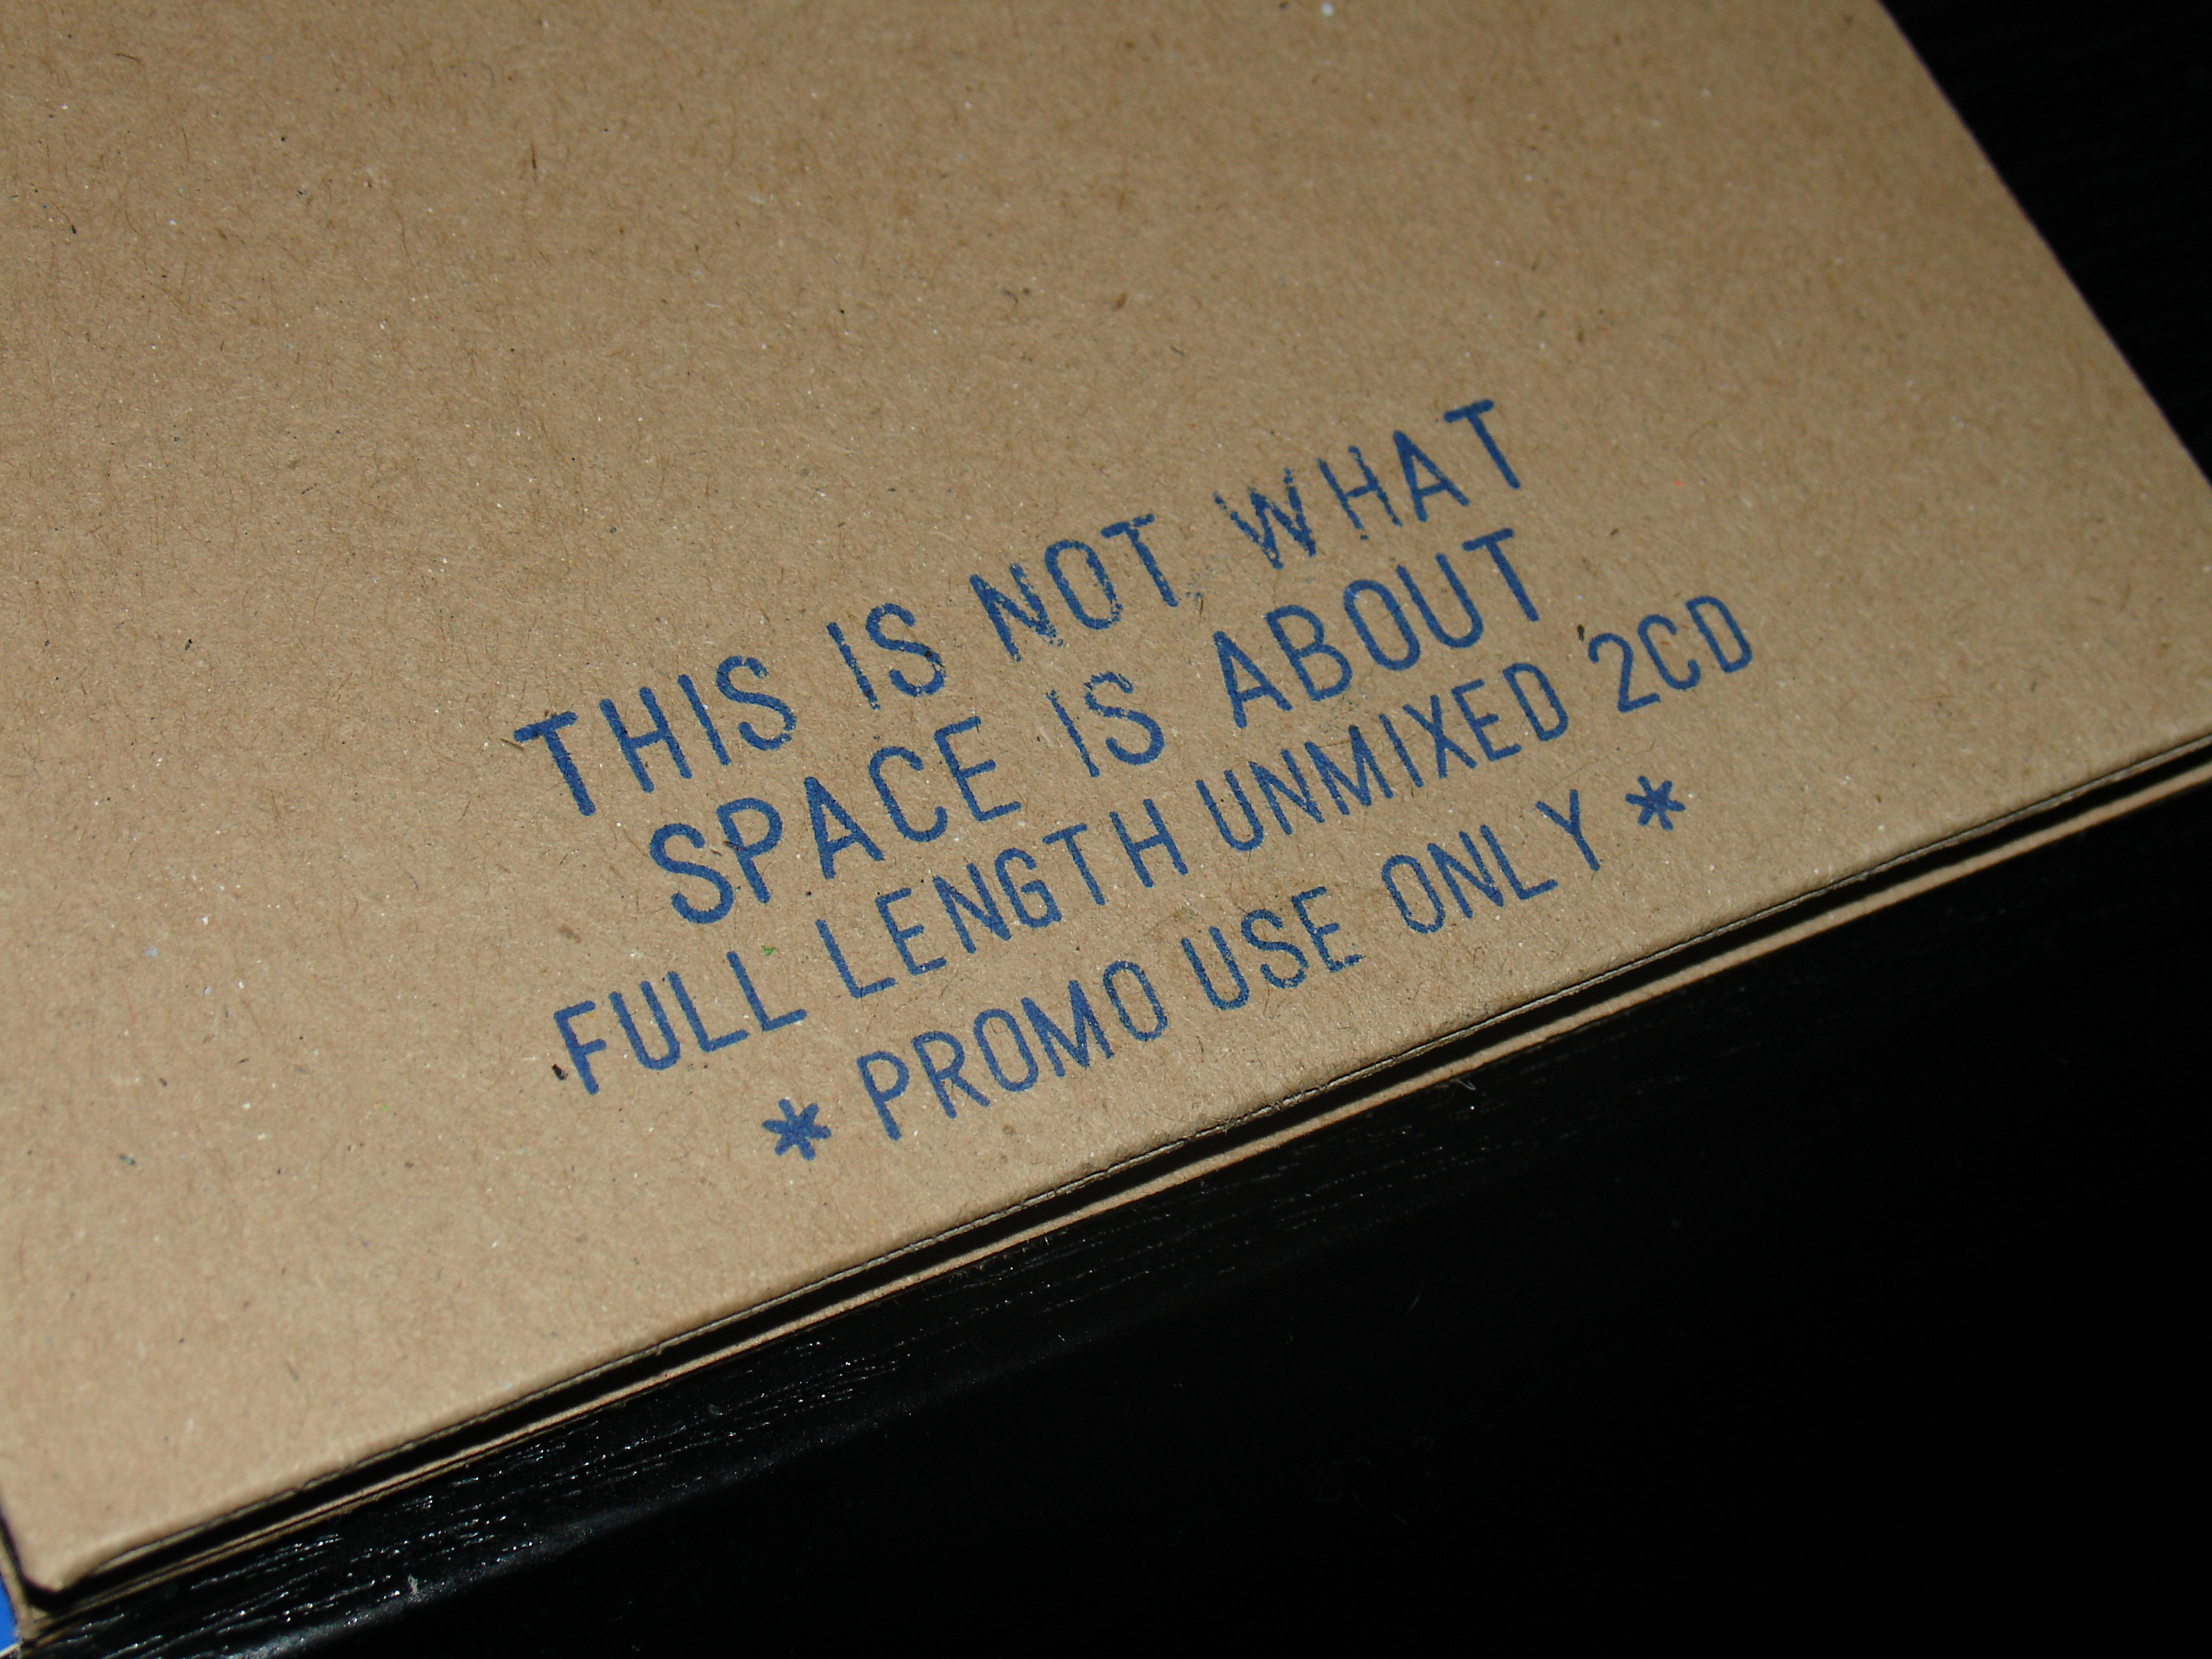 03 This is Not What Space is About Full Length Unmixed 2CD Promo (Cardboard Sleeve).JPG